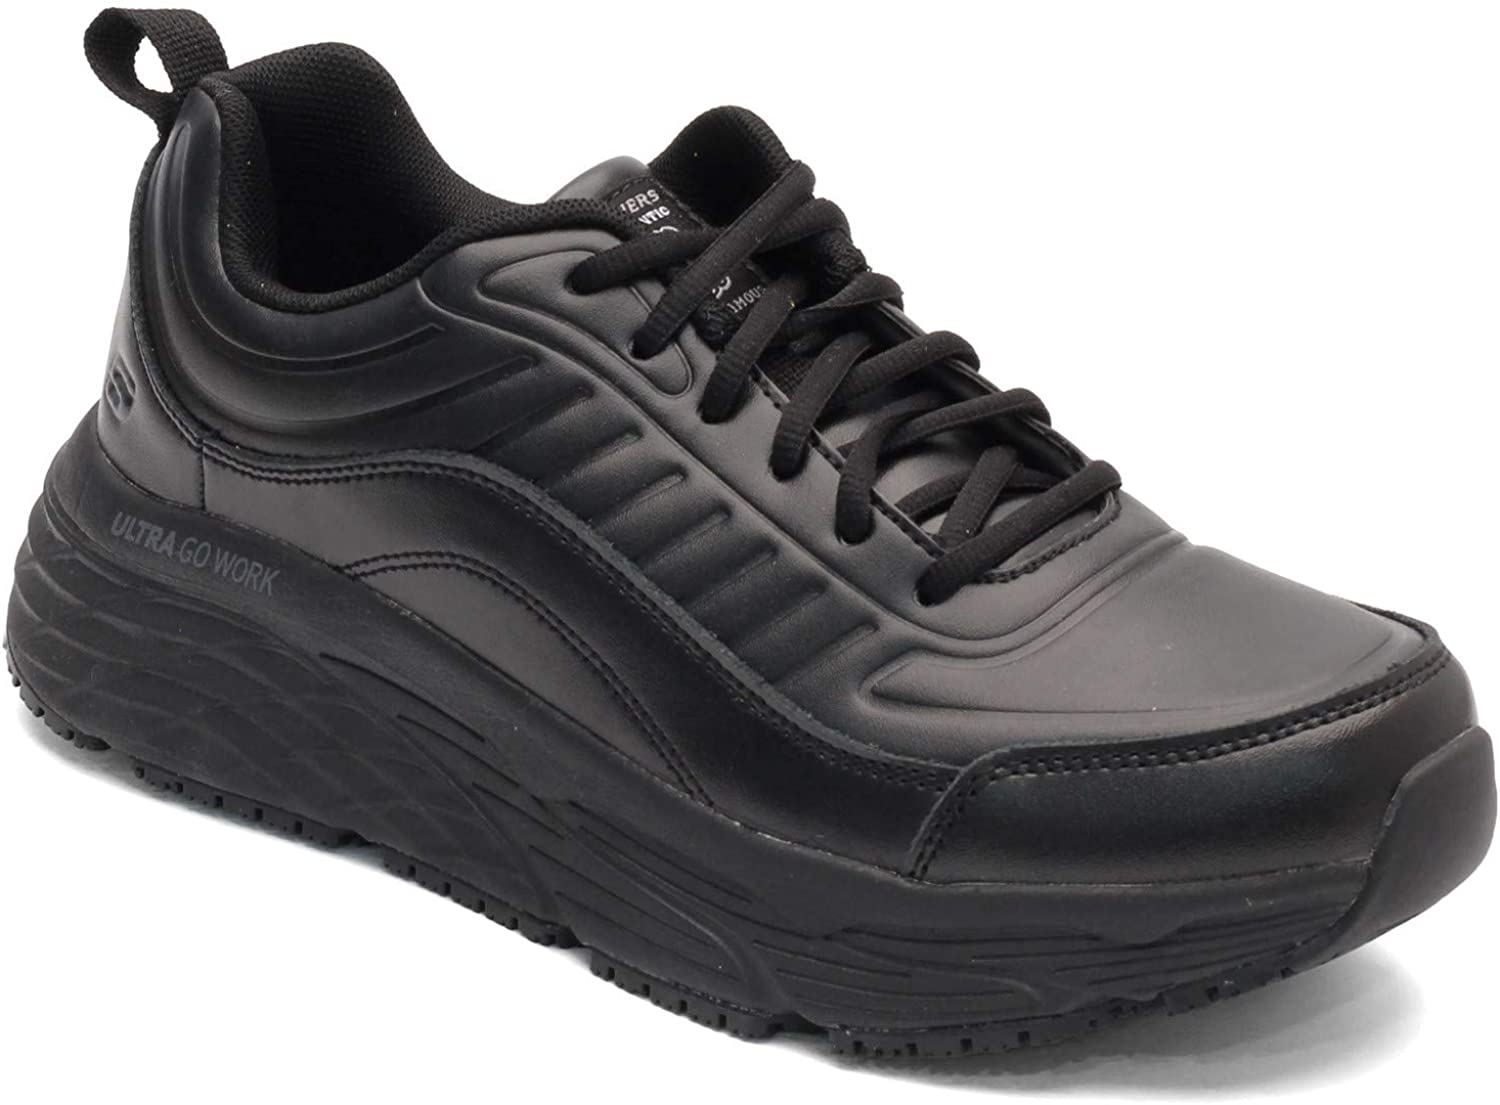 Skechers Men's, Max Cushioning Elite SR - Tostock Work Shoe: Shoes